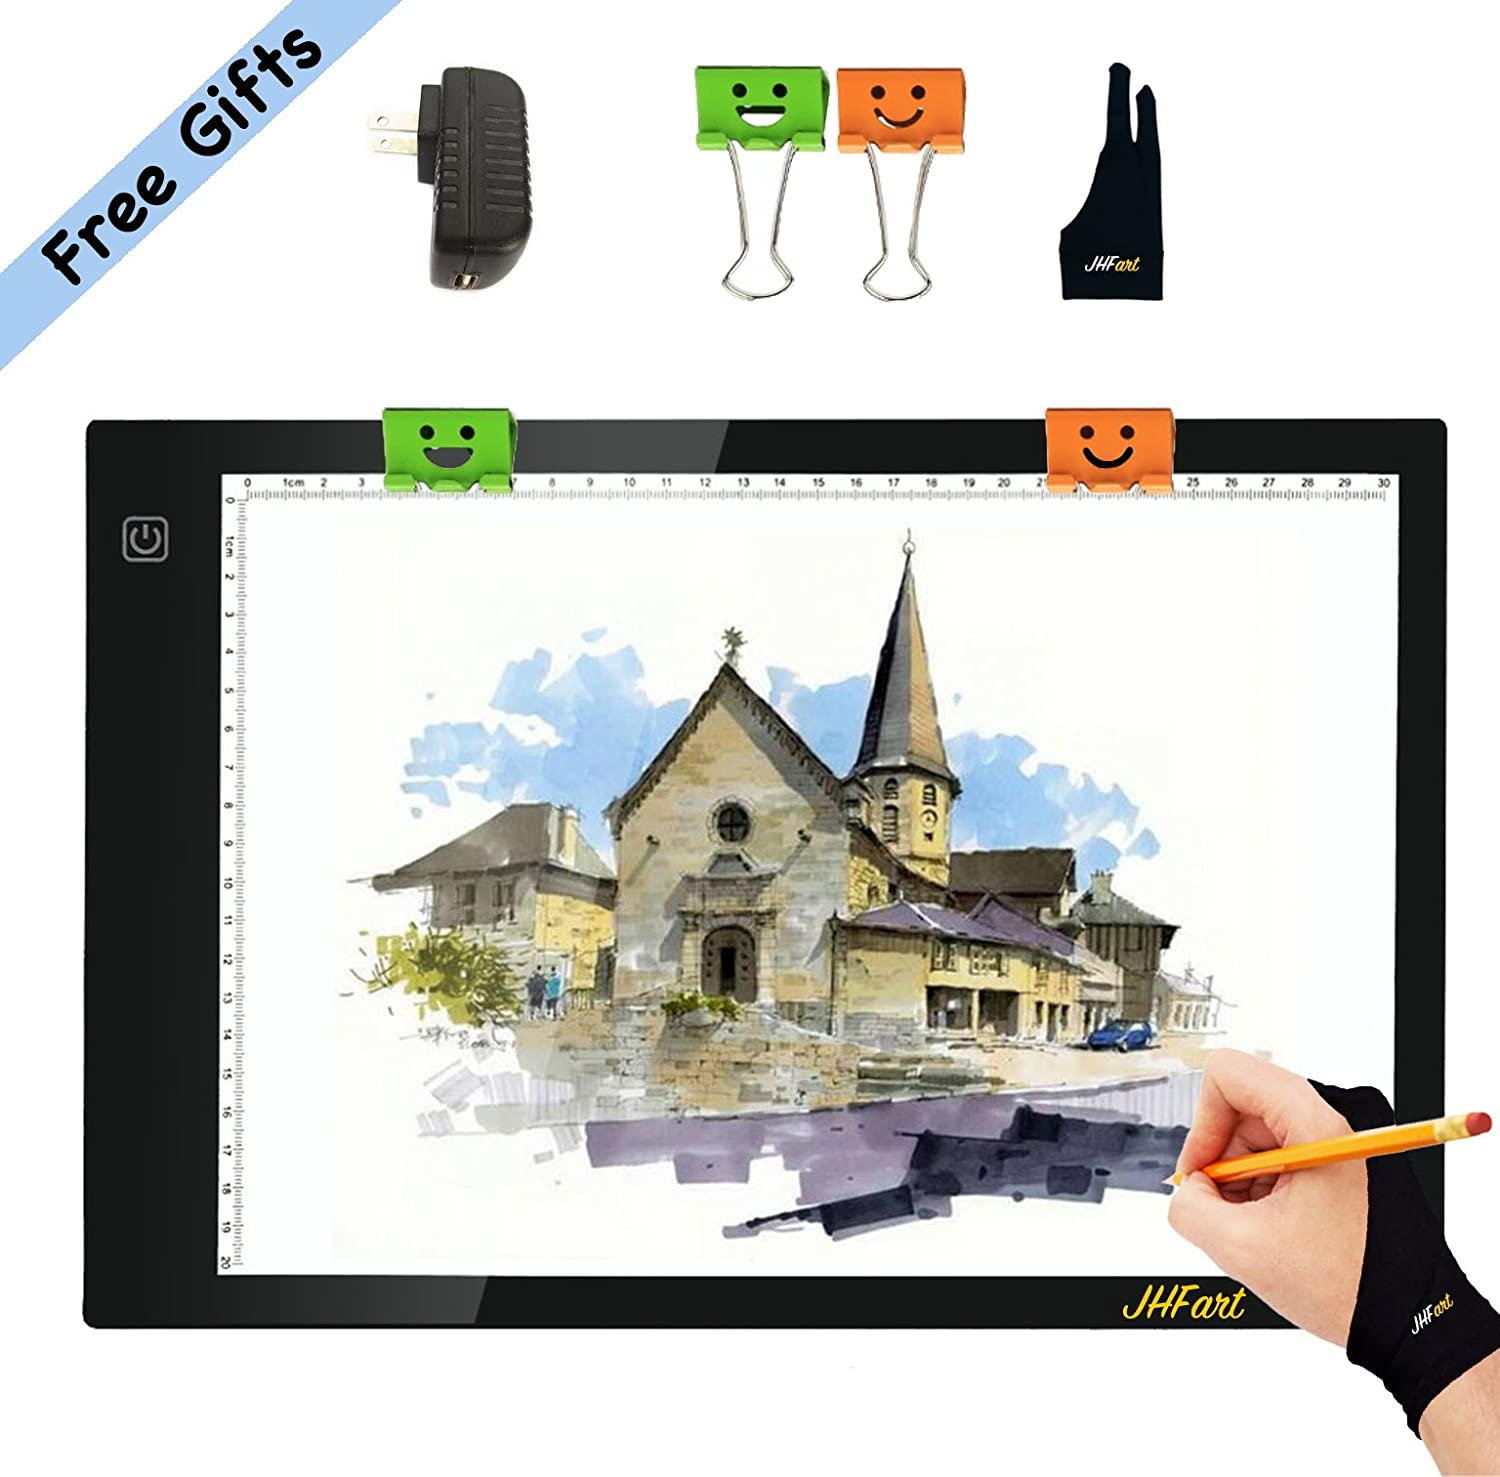 JHFart A4 Light Table Light Box Tracer Memory Function Led Light Pad Drawing Board Artcraft Tattoo Watercolour Copy Quilting Tracing Diamond Painting Xray Pad w// Clips Glove and Certified USB Adapter